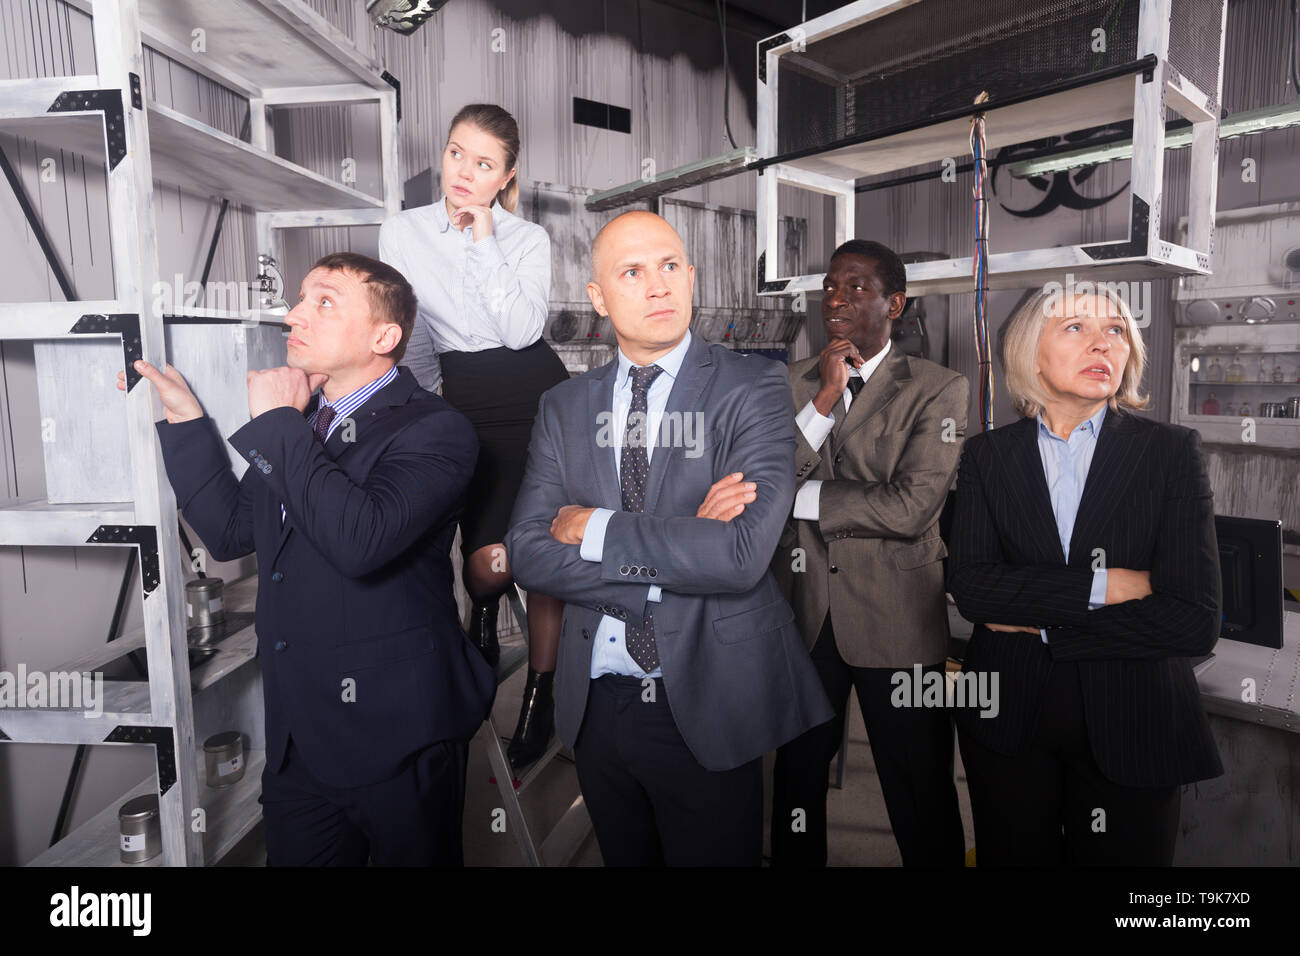 Five pensive adults businesspeople solving conundrums in quest room in view as abandoned lab during corporate event - Stock Image